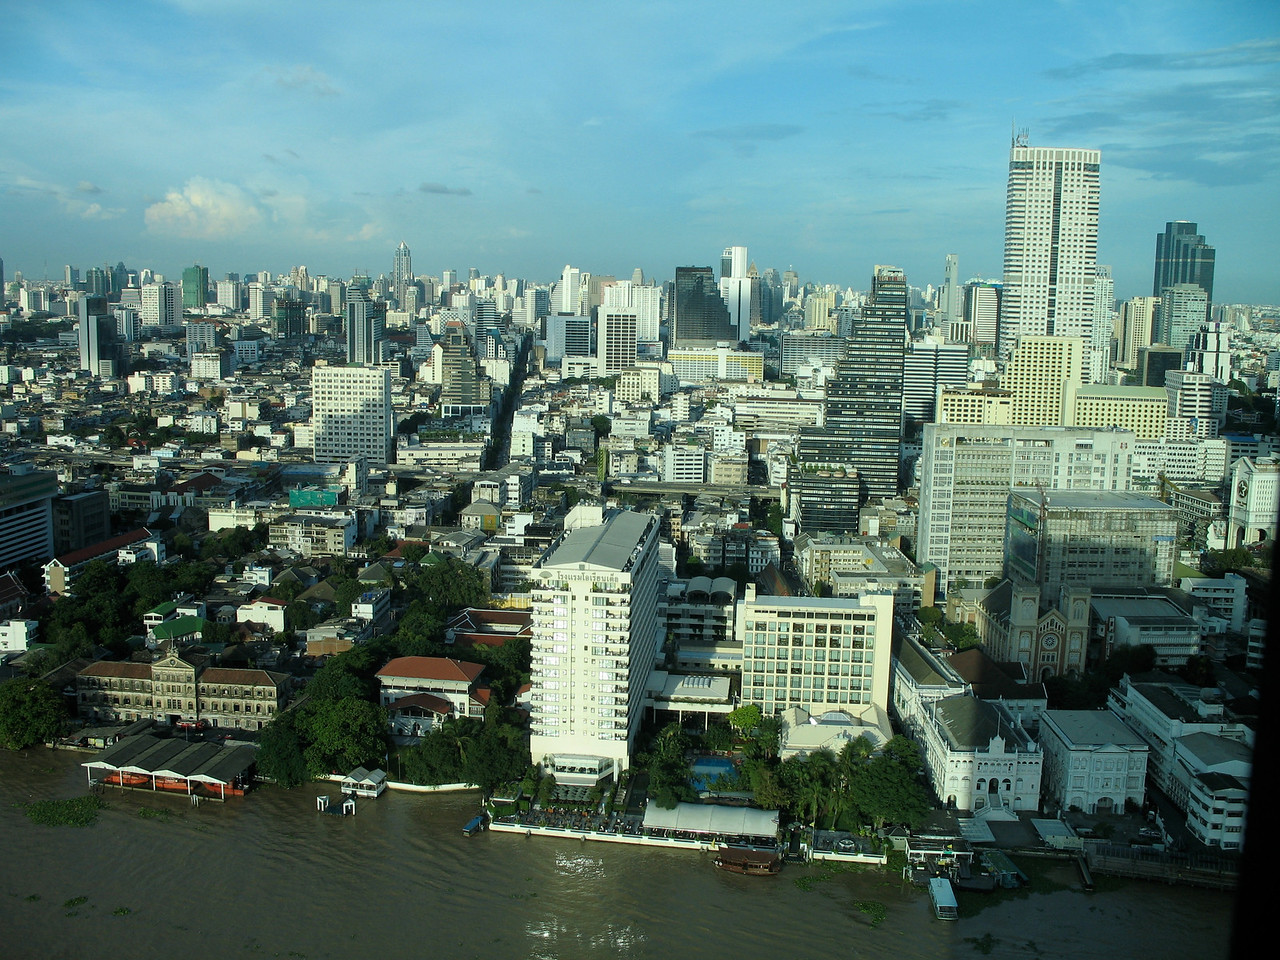 Here's a view of the City of Bangkok from the 35th floor.